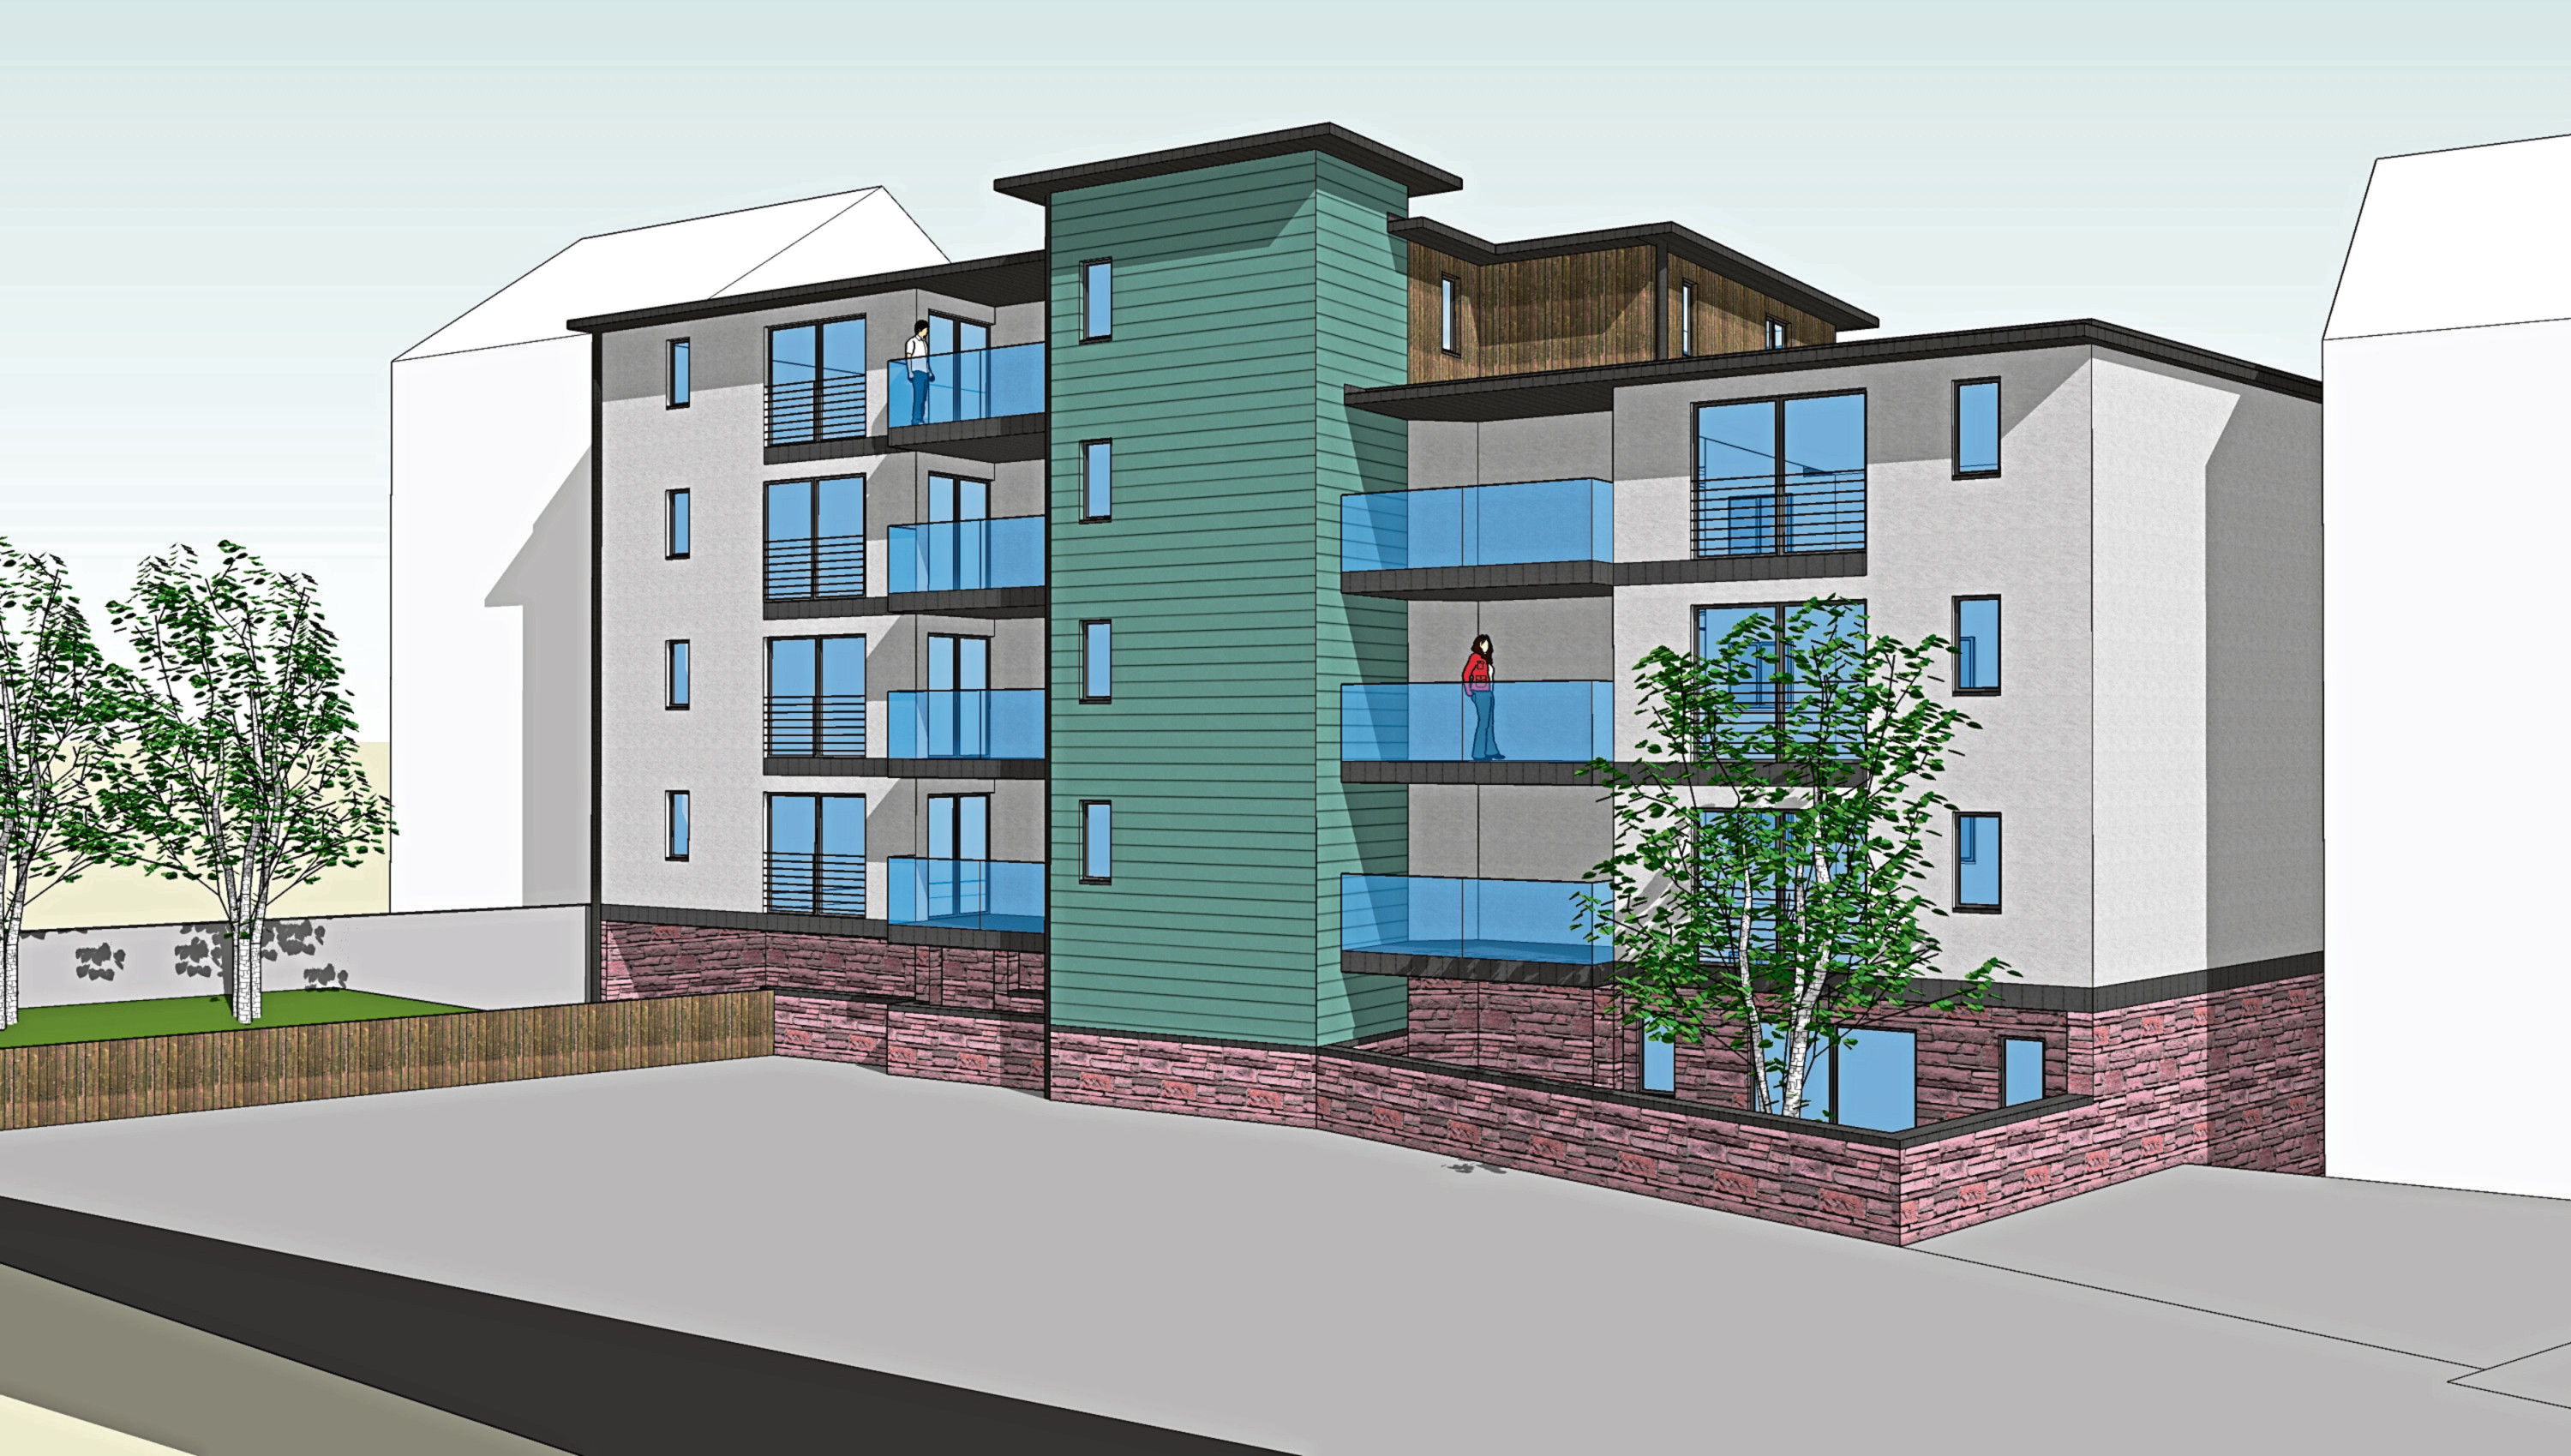 The 'modern tenements' planned for Hilltown